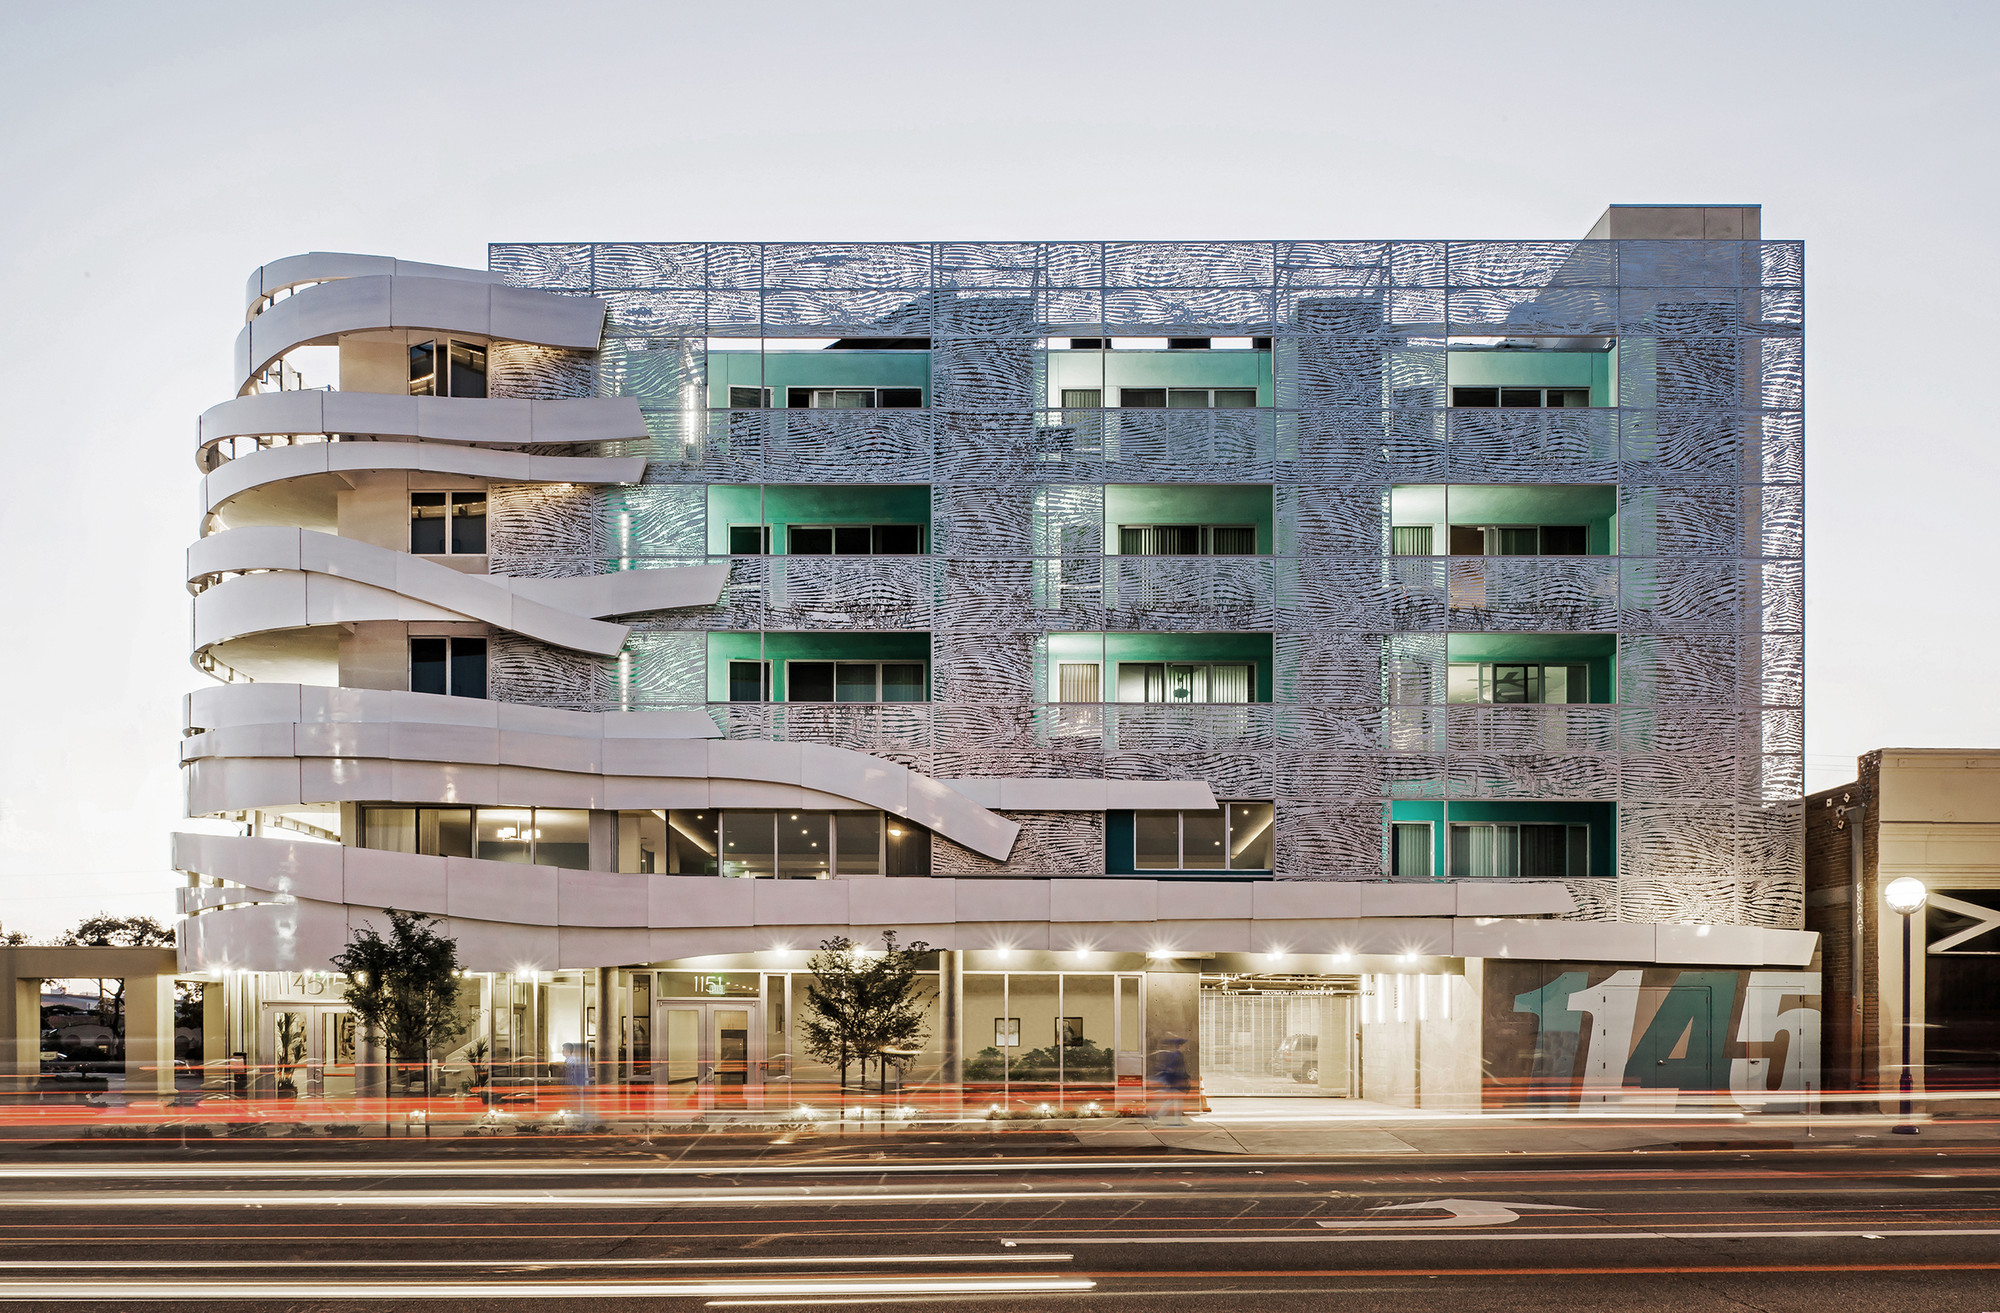 La Brea Affordable Housing / Patrick Tighe + John V. Mutlow